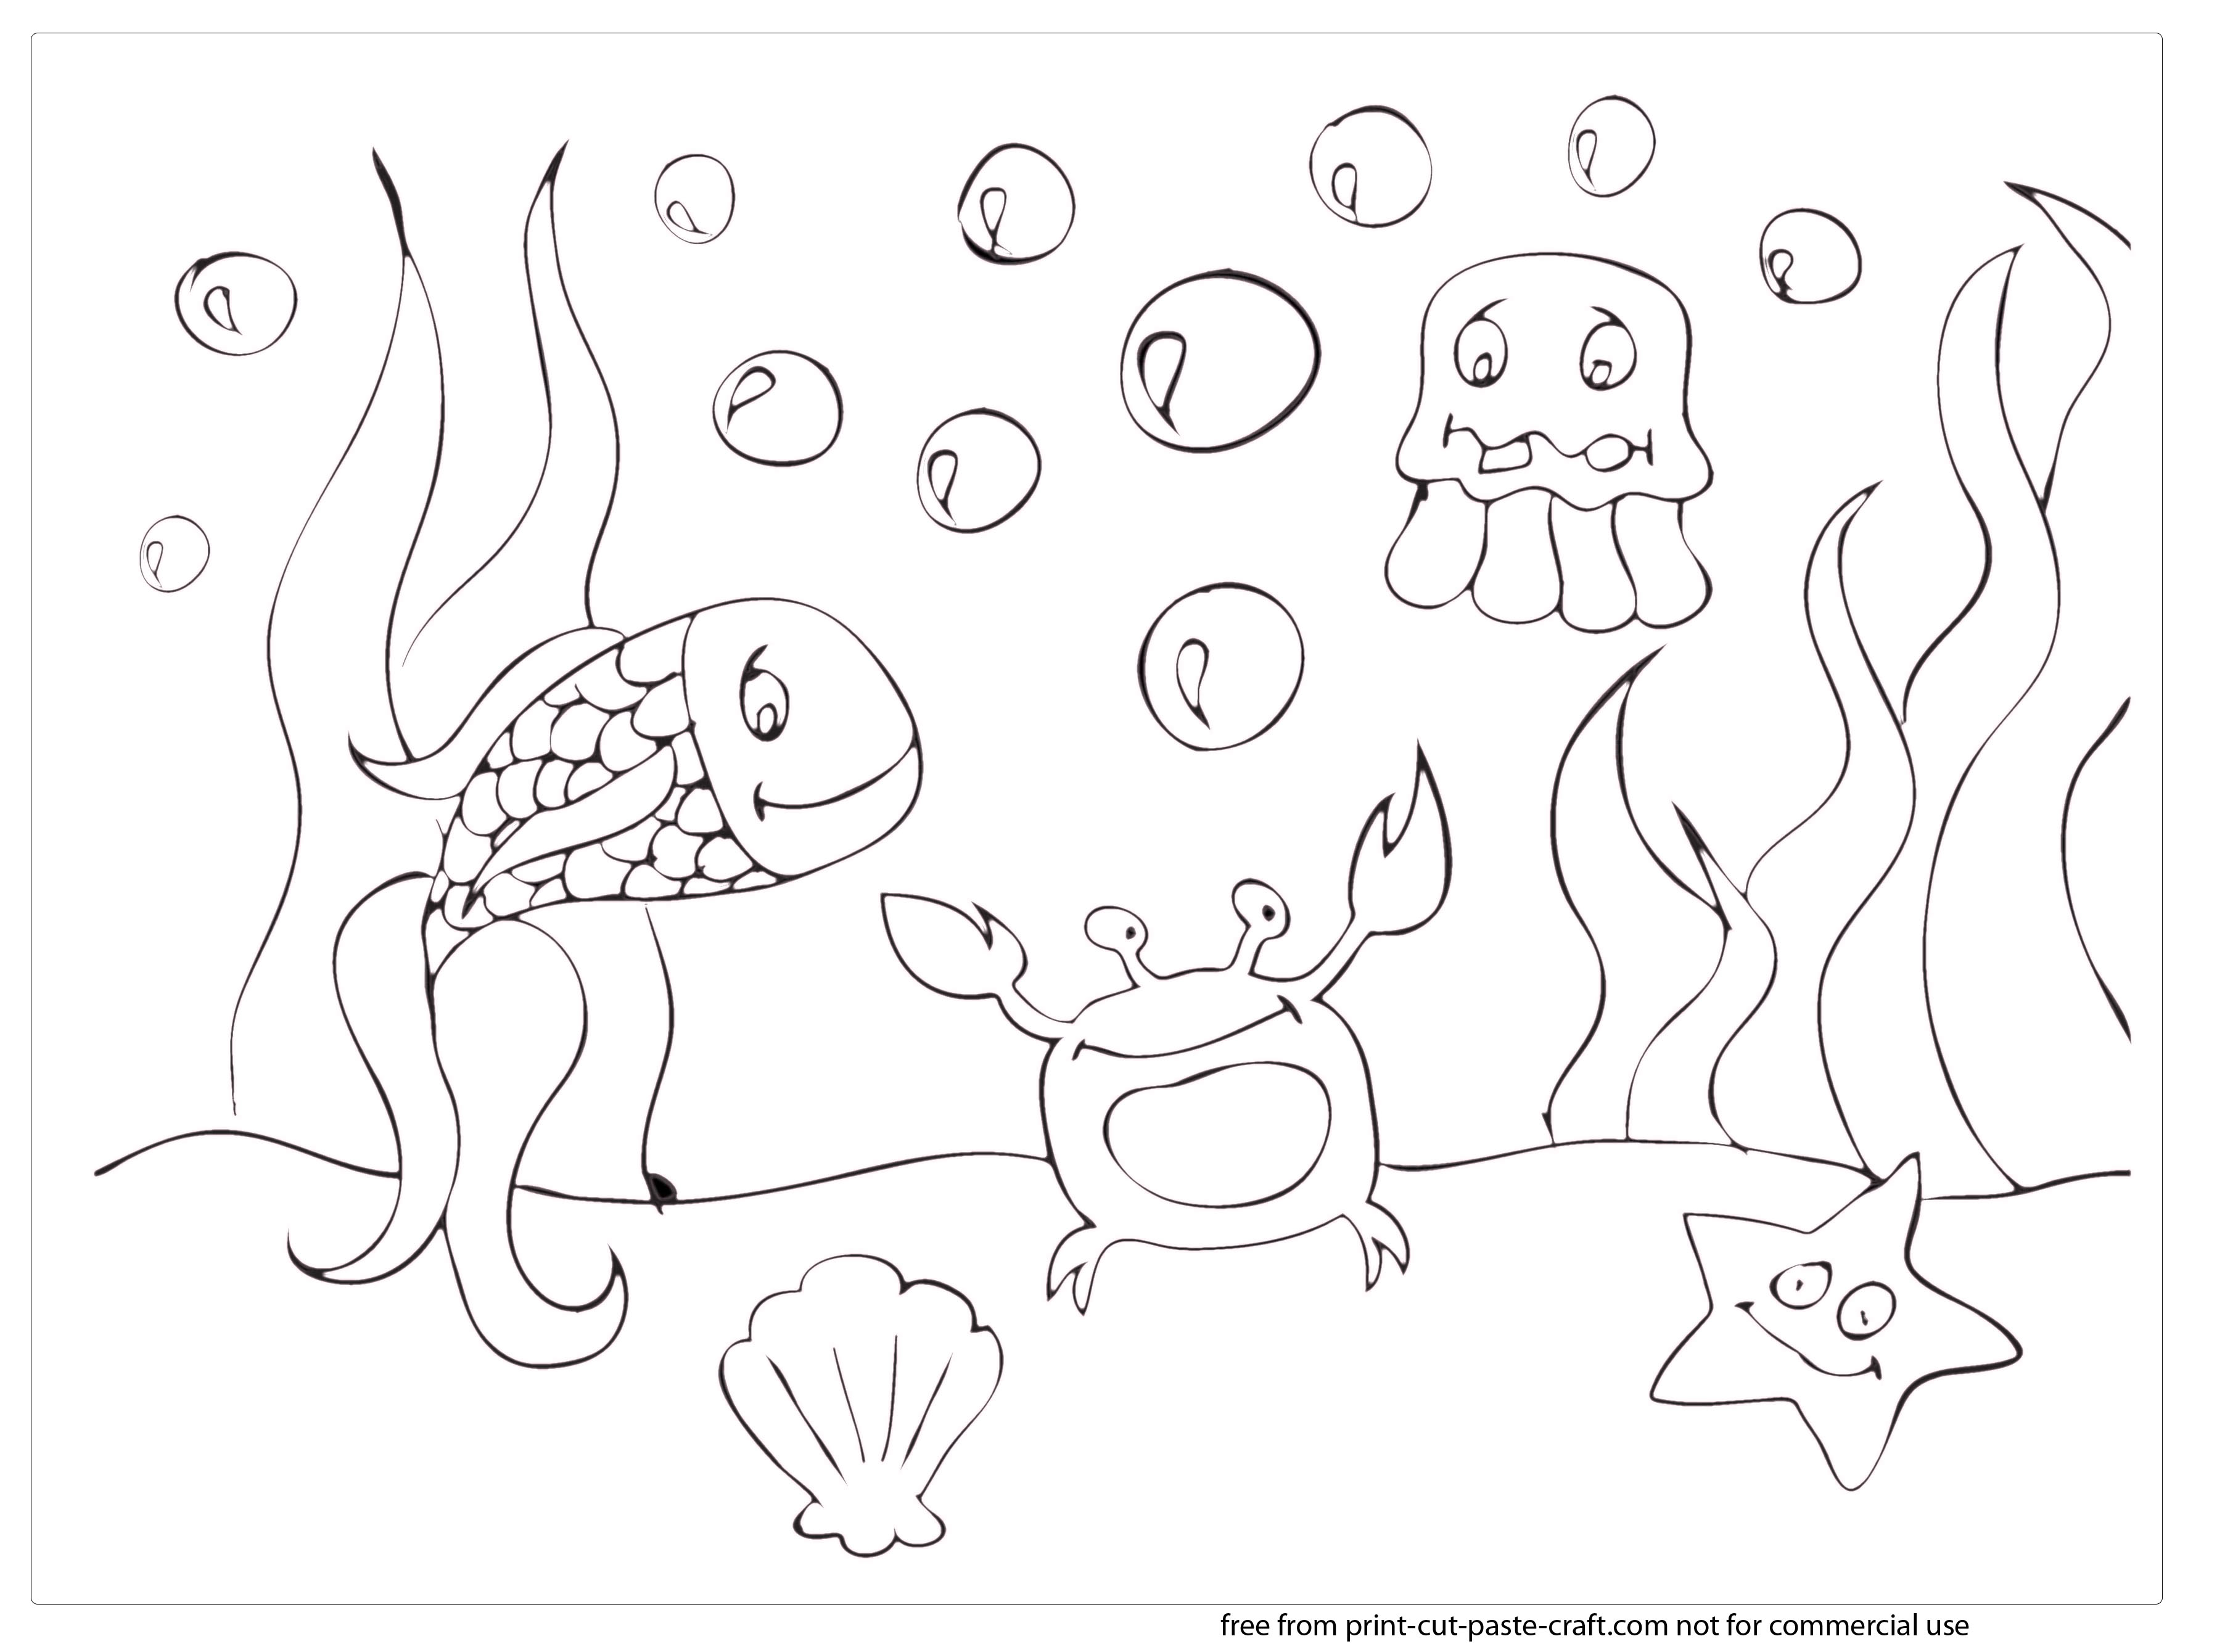 World Under Sea Drawing at GetDrawings.com | Free for personal use ...